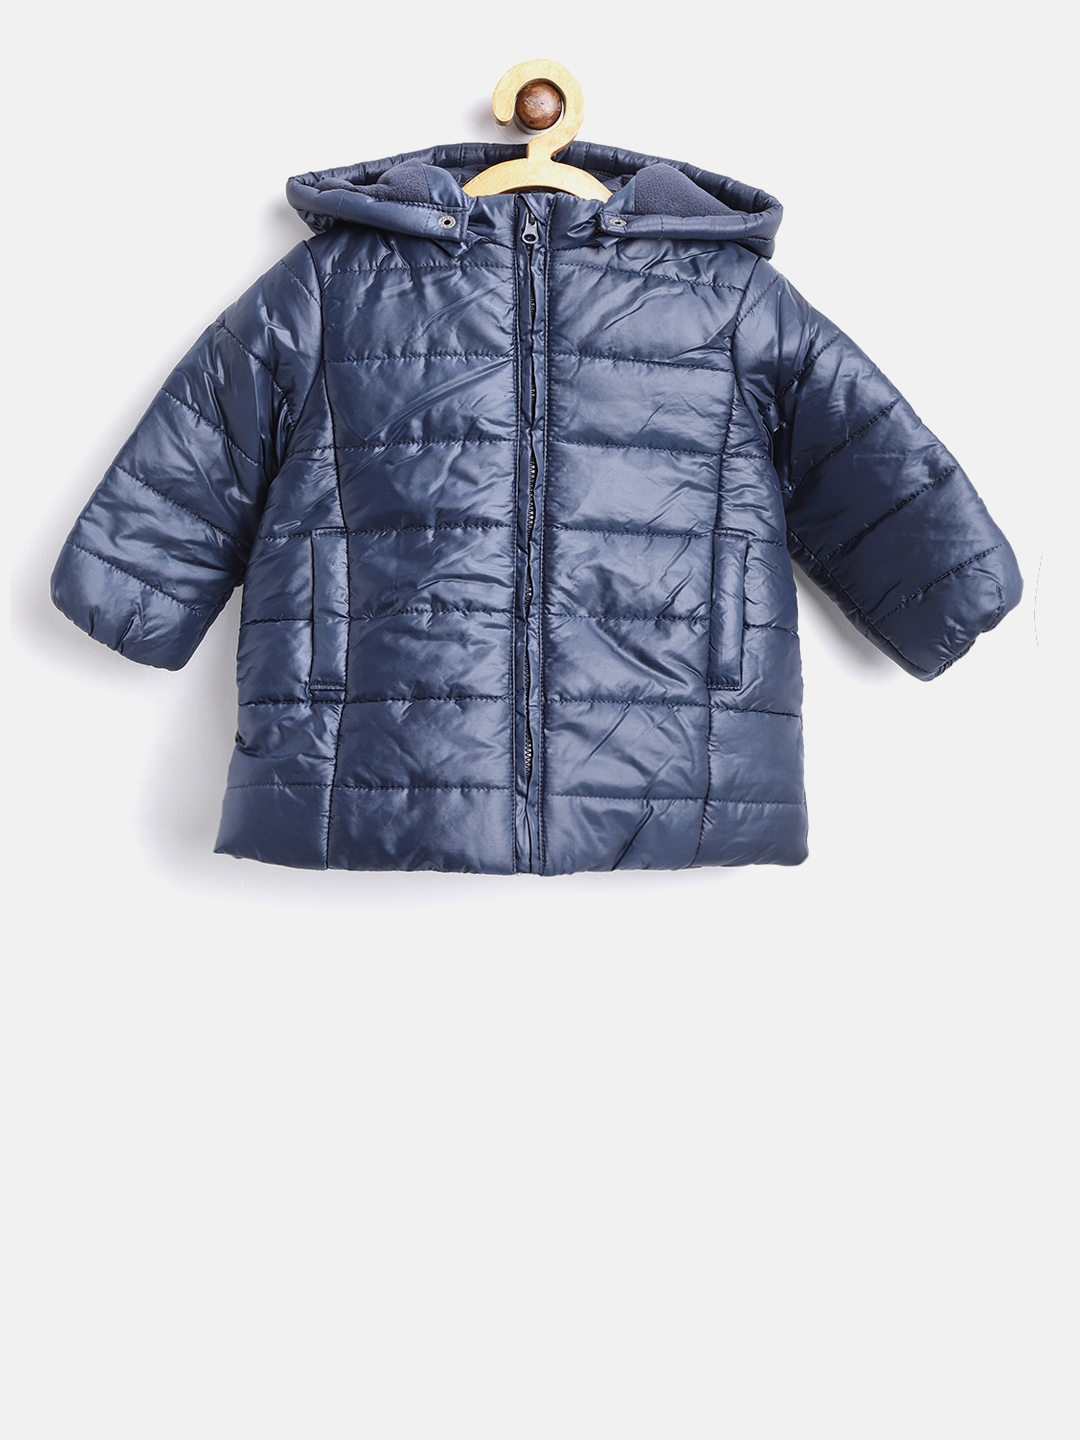 b463fe0fd Buy Losan Girls Navy Blue Solid Hooded Puffer Jacket - Jackets for ...